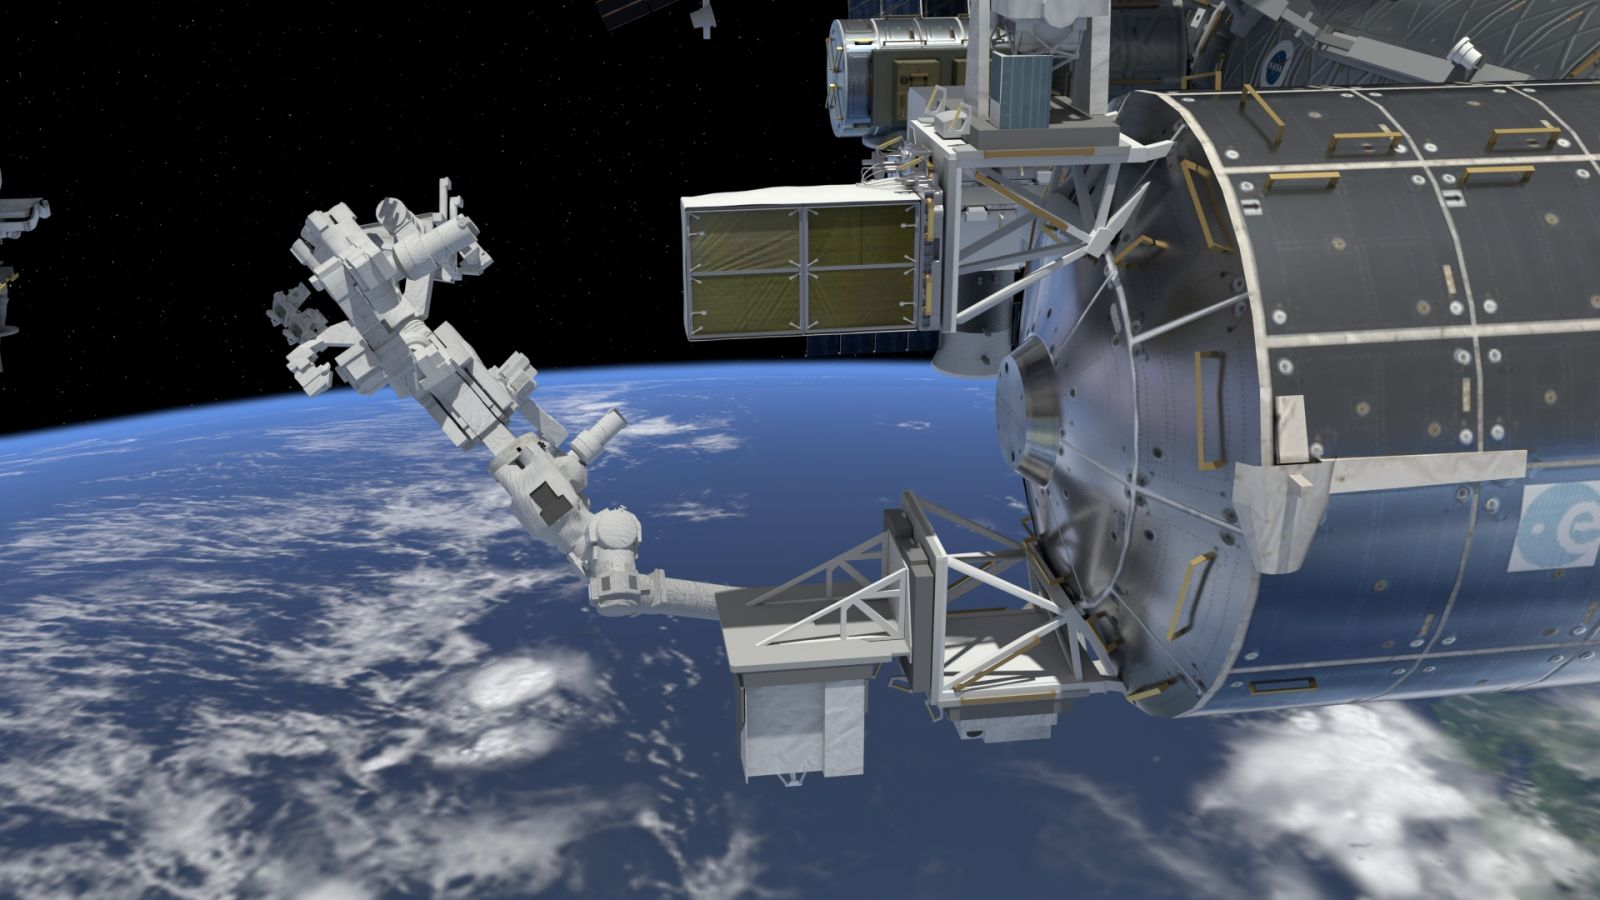 An artist's rendering of the Space Debris Senor installed on the International Space Station. It was one of two external instruments recently installed at the orbiting outpost. Image Credit: NASA